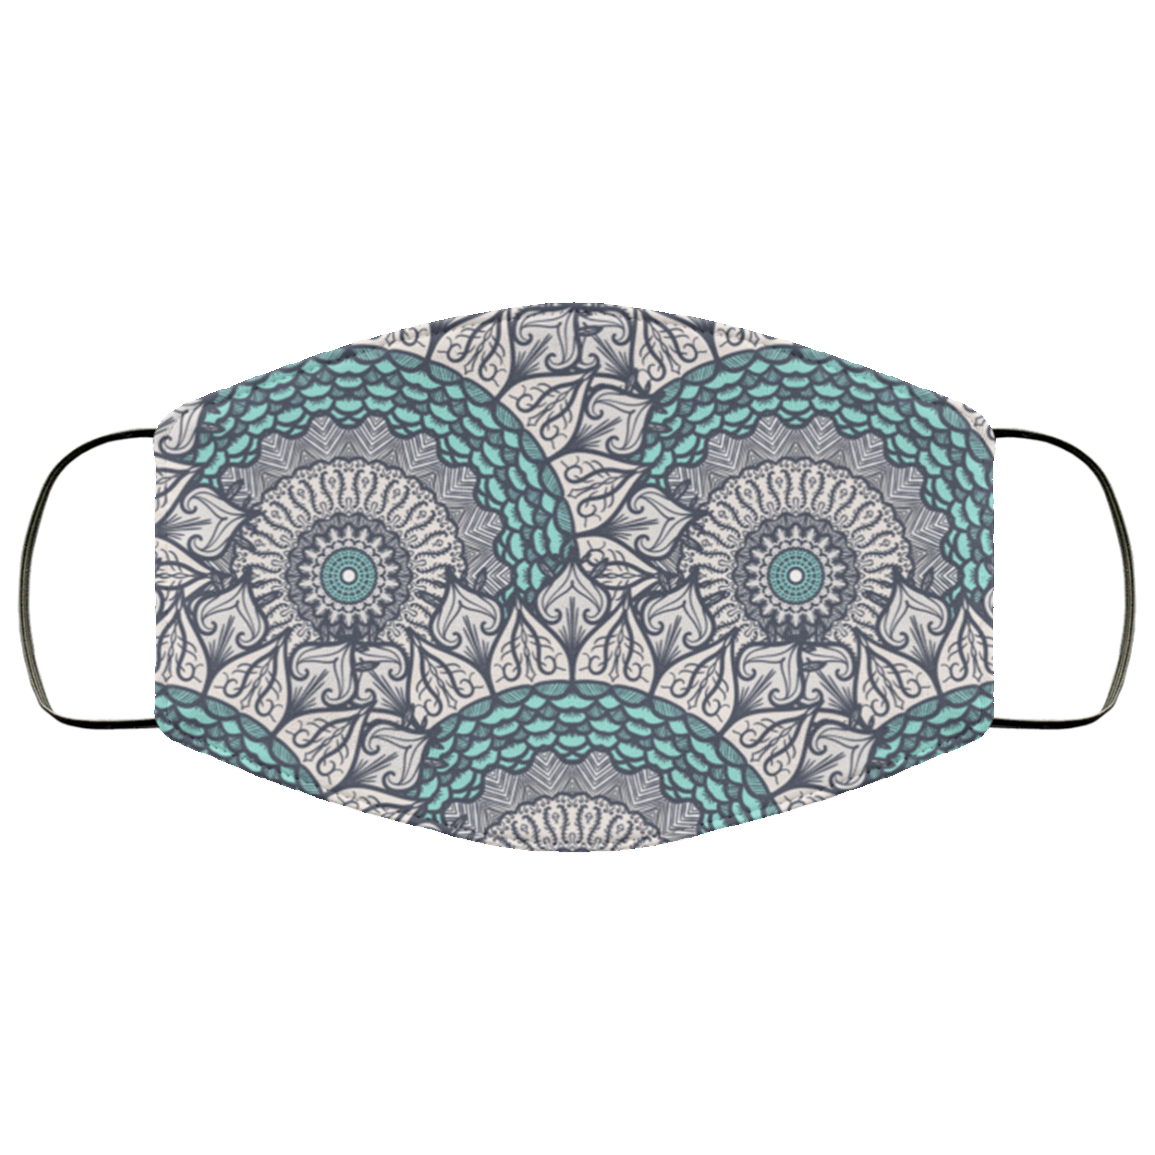 Boho Design Reusable Face Mask